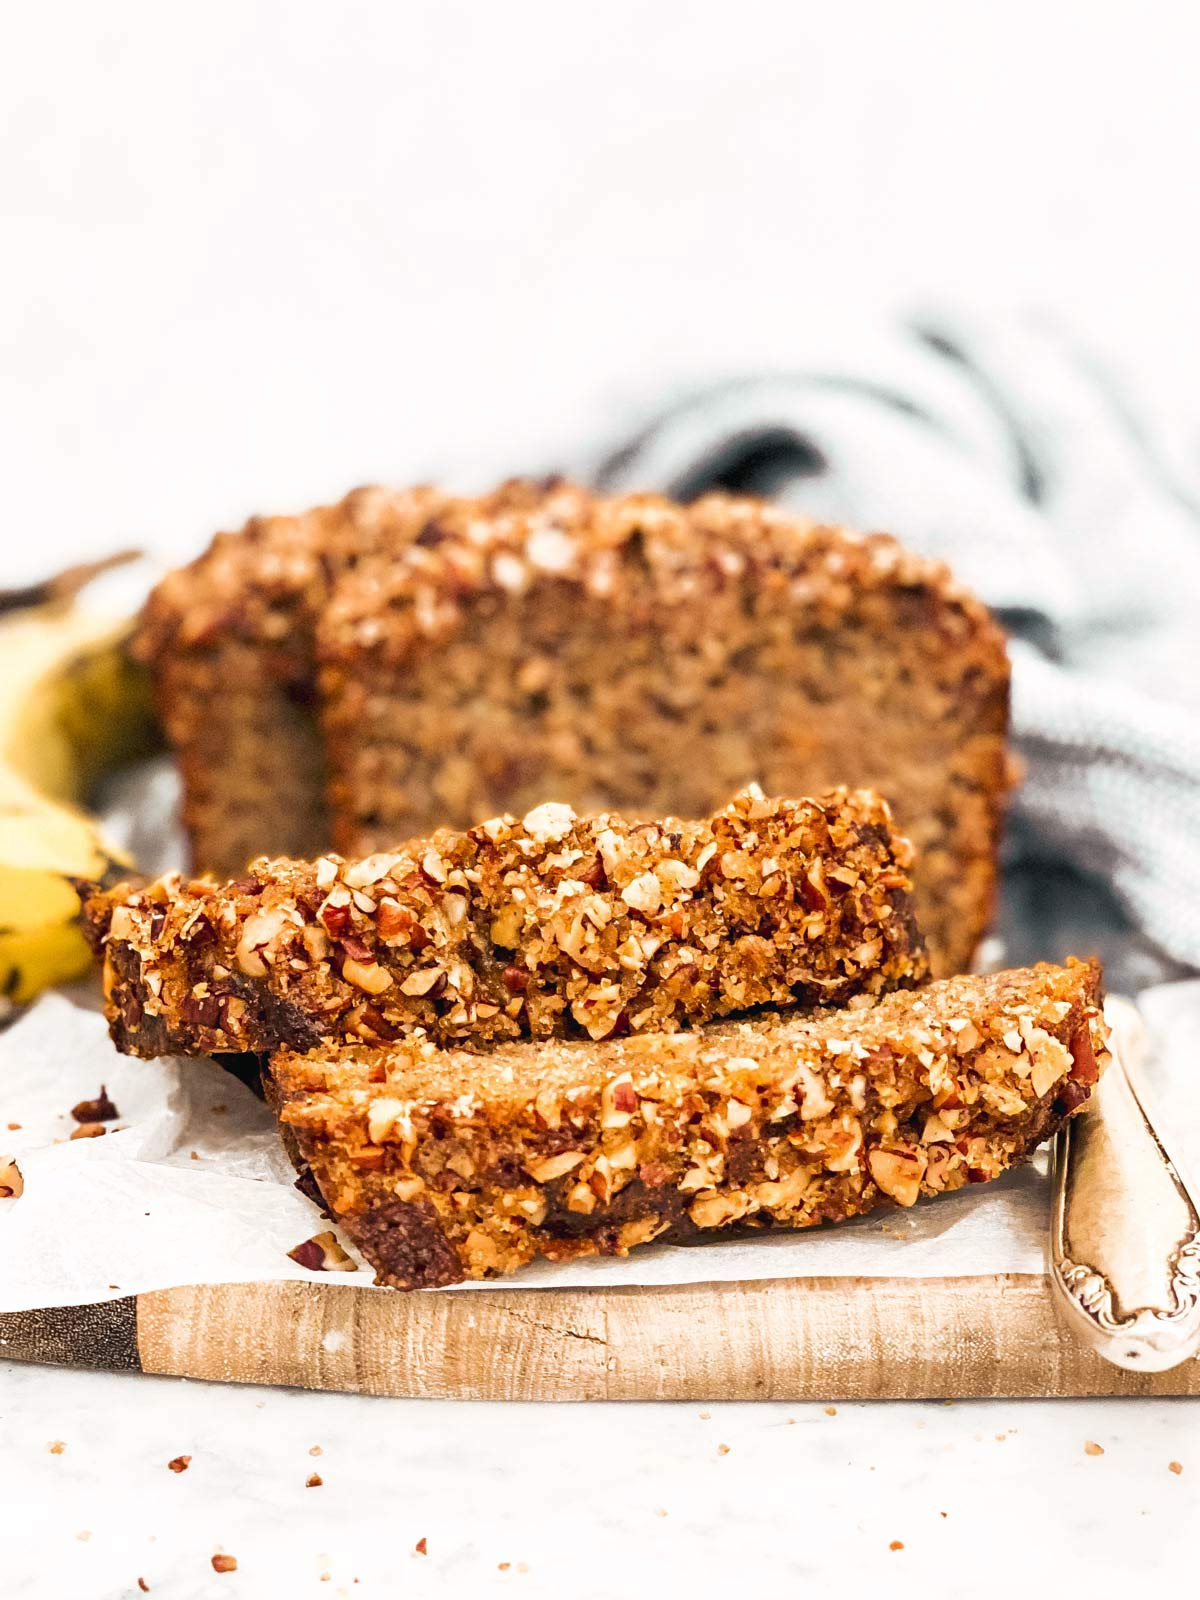 frontal image of sliced banana bread